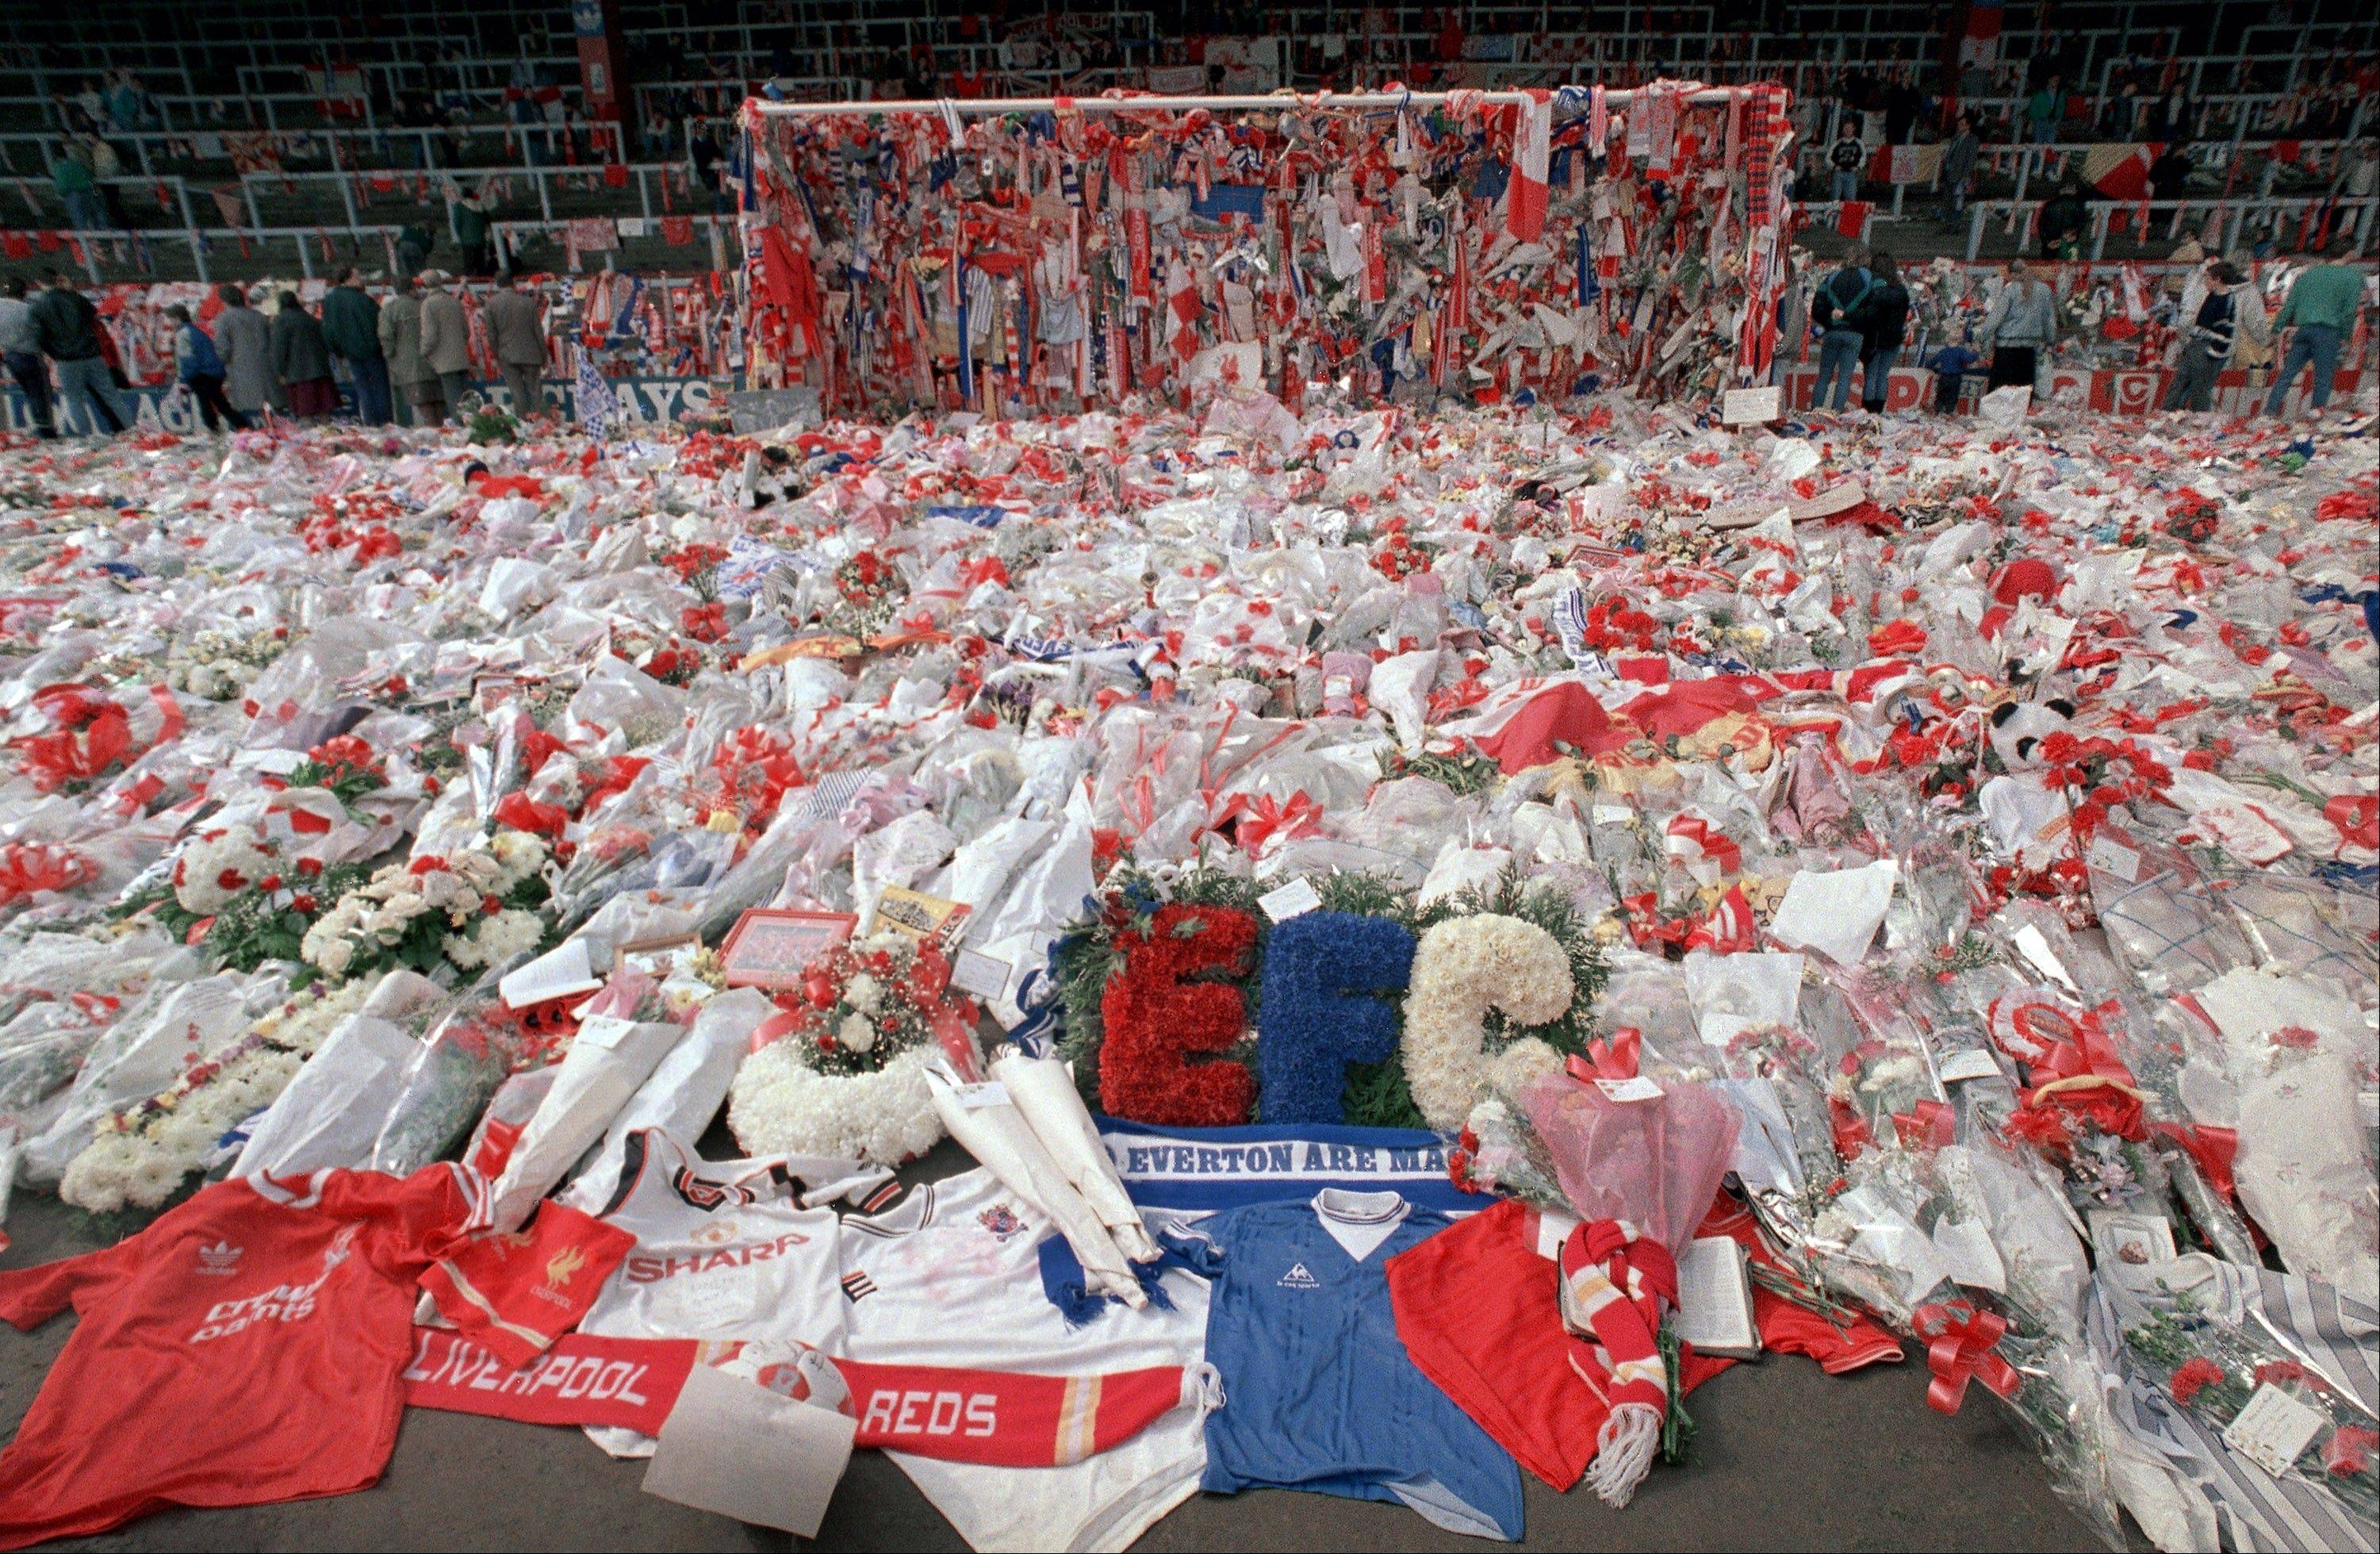 Liverpool soccer fans arrive at Anfield Stadium to pay their respects as flower tributes cover the 'Kop' end of the field, in Liverpool, on April 17, 1989, following April 15, when fans surged forward during the FA Cup semi-final between Liverpool and Nottingham Forest at Hillsborough Stadium in Sheffield, when the crash barriers gave way, killing 96 Liverpool fans and injuring over 200 others. After a long campaign by relatives of the 96 soccer fans who were crushed to death in Britainís worst sporting disaster, some 400,000 pages of previously undisclosed papers will be released Wednesday Sept. 12, 2012, and the previously secret documents may clarify what caused the disaster and how mistakes by British authorities may have contributed to the 1989 tragedy. (AP Photo, File)